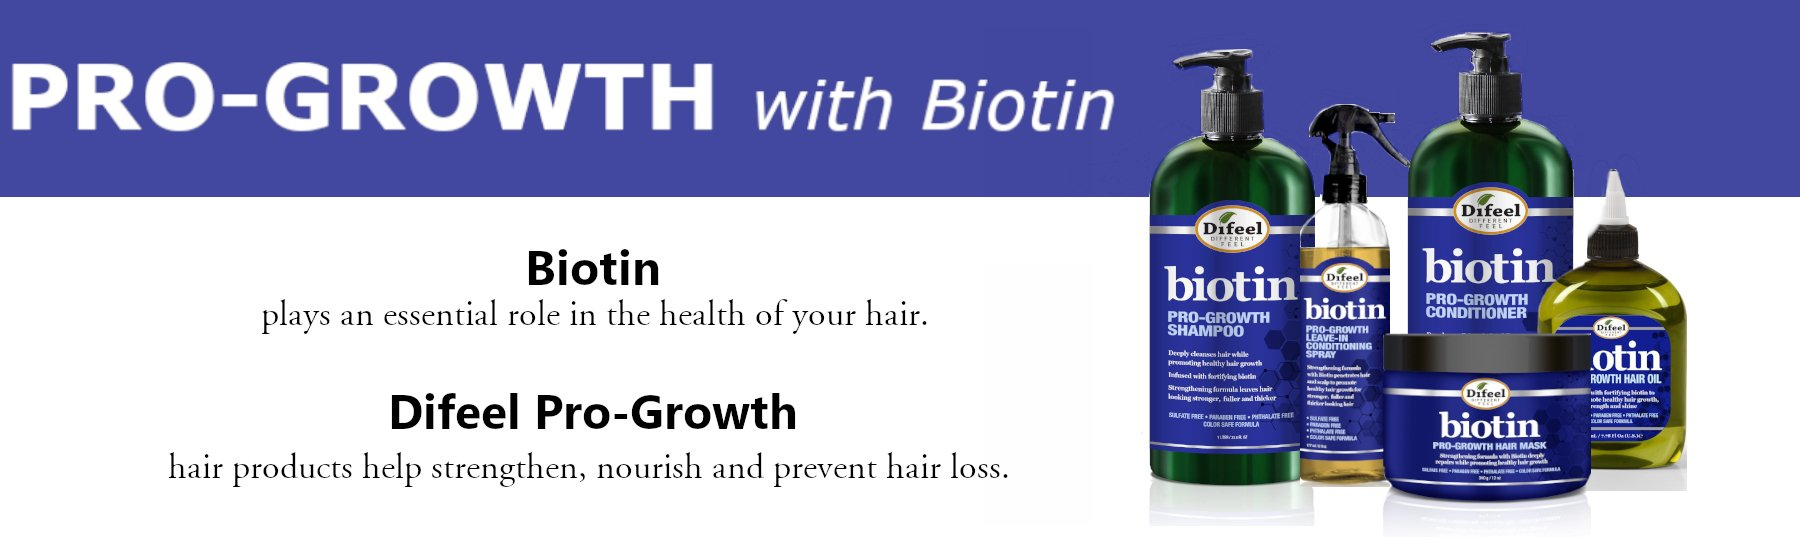 Difeel Pro-Growth Biotin Shampoo 12 oz.